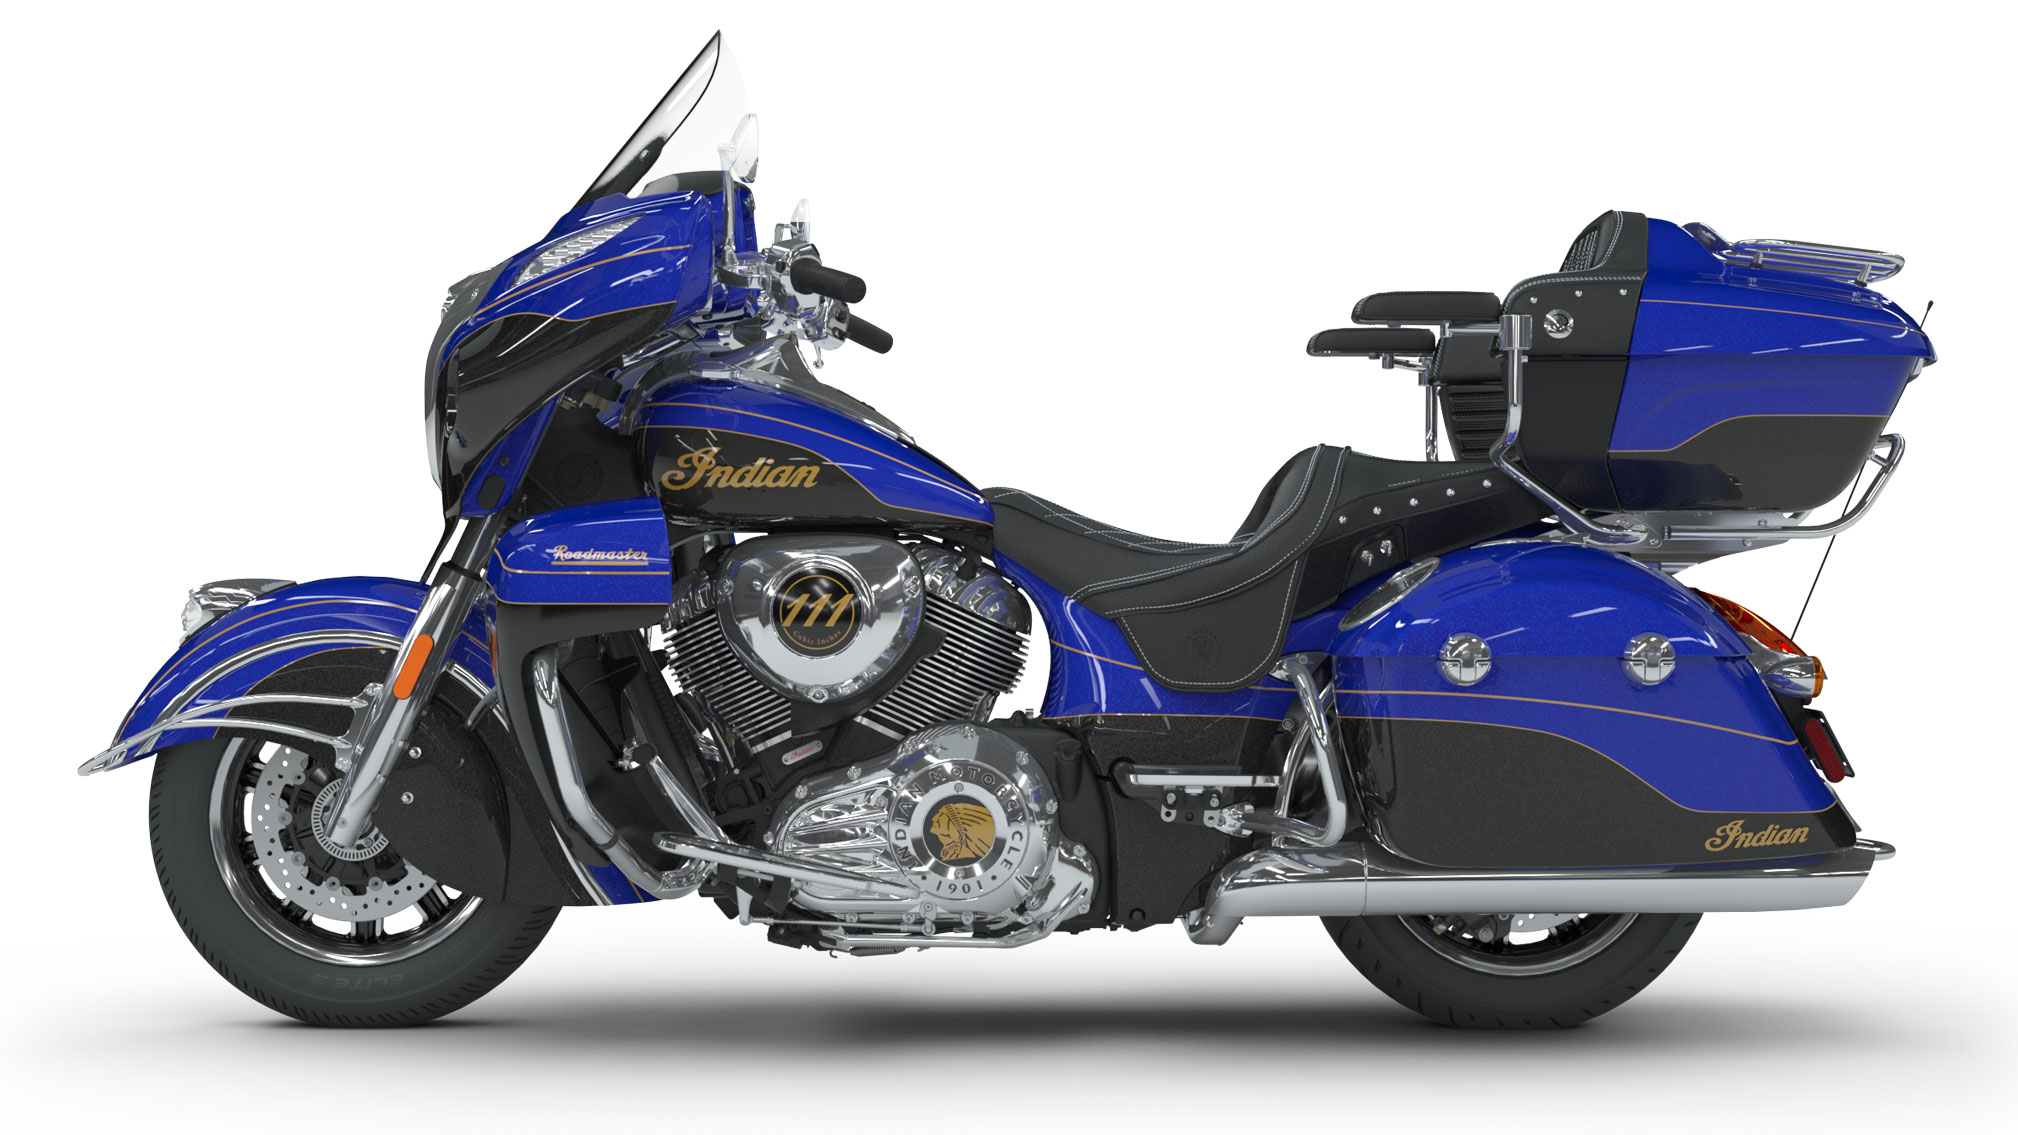 2018 Indian Roadmaster Elite Review - TotalMotorcycle